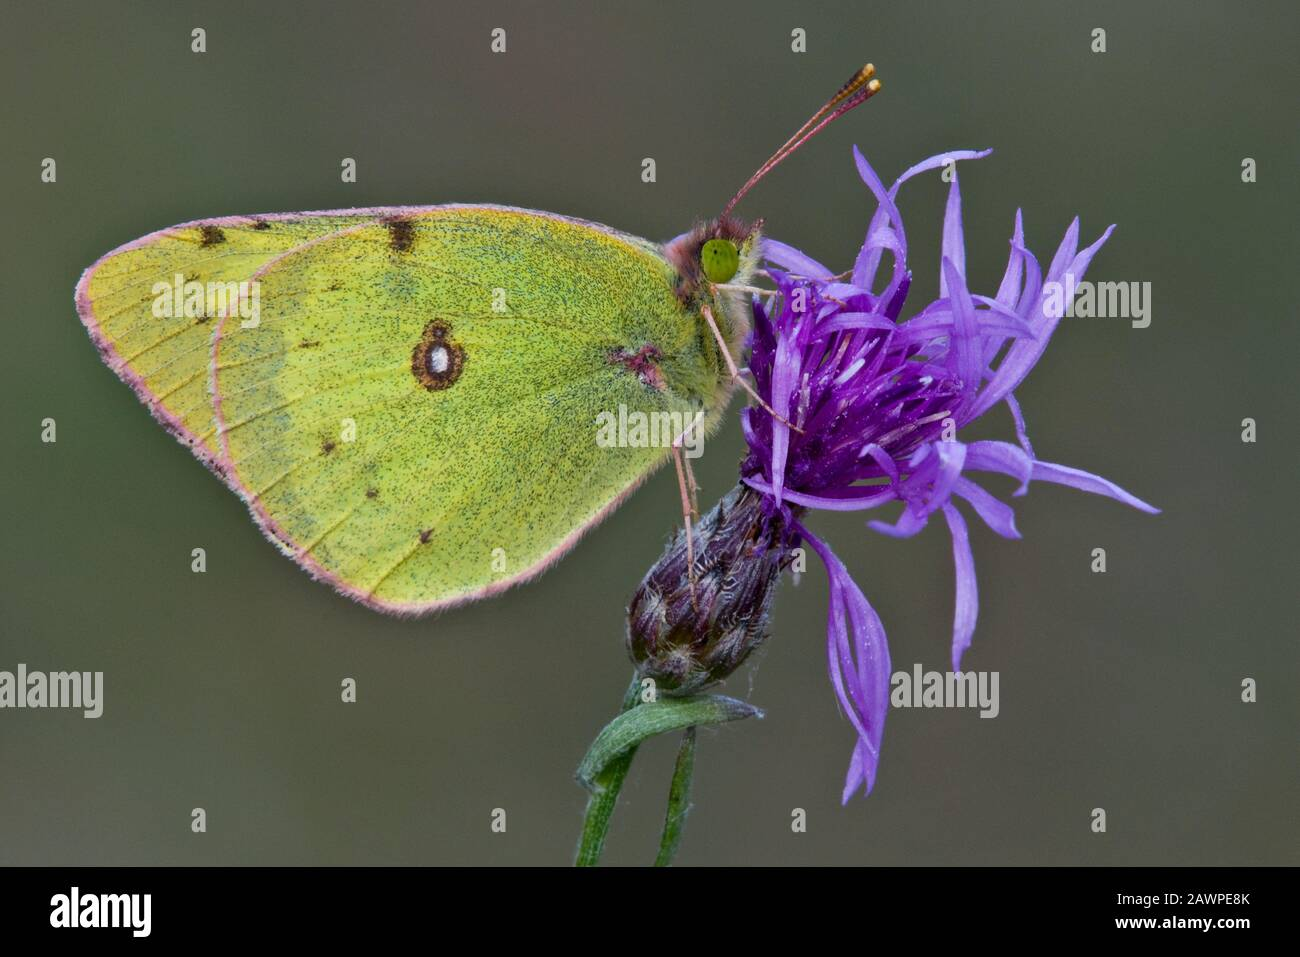 Clouded Sulphur Butterfly (Colias philodice) on Spotted Knapweed (Centaurea maculosa), E USA, by Skip Moody/Dembinsky Photo Assoc Stock Photo